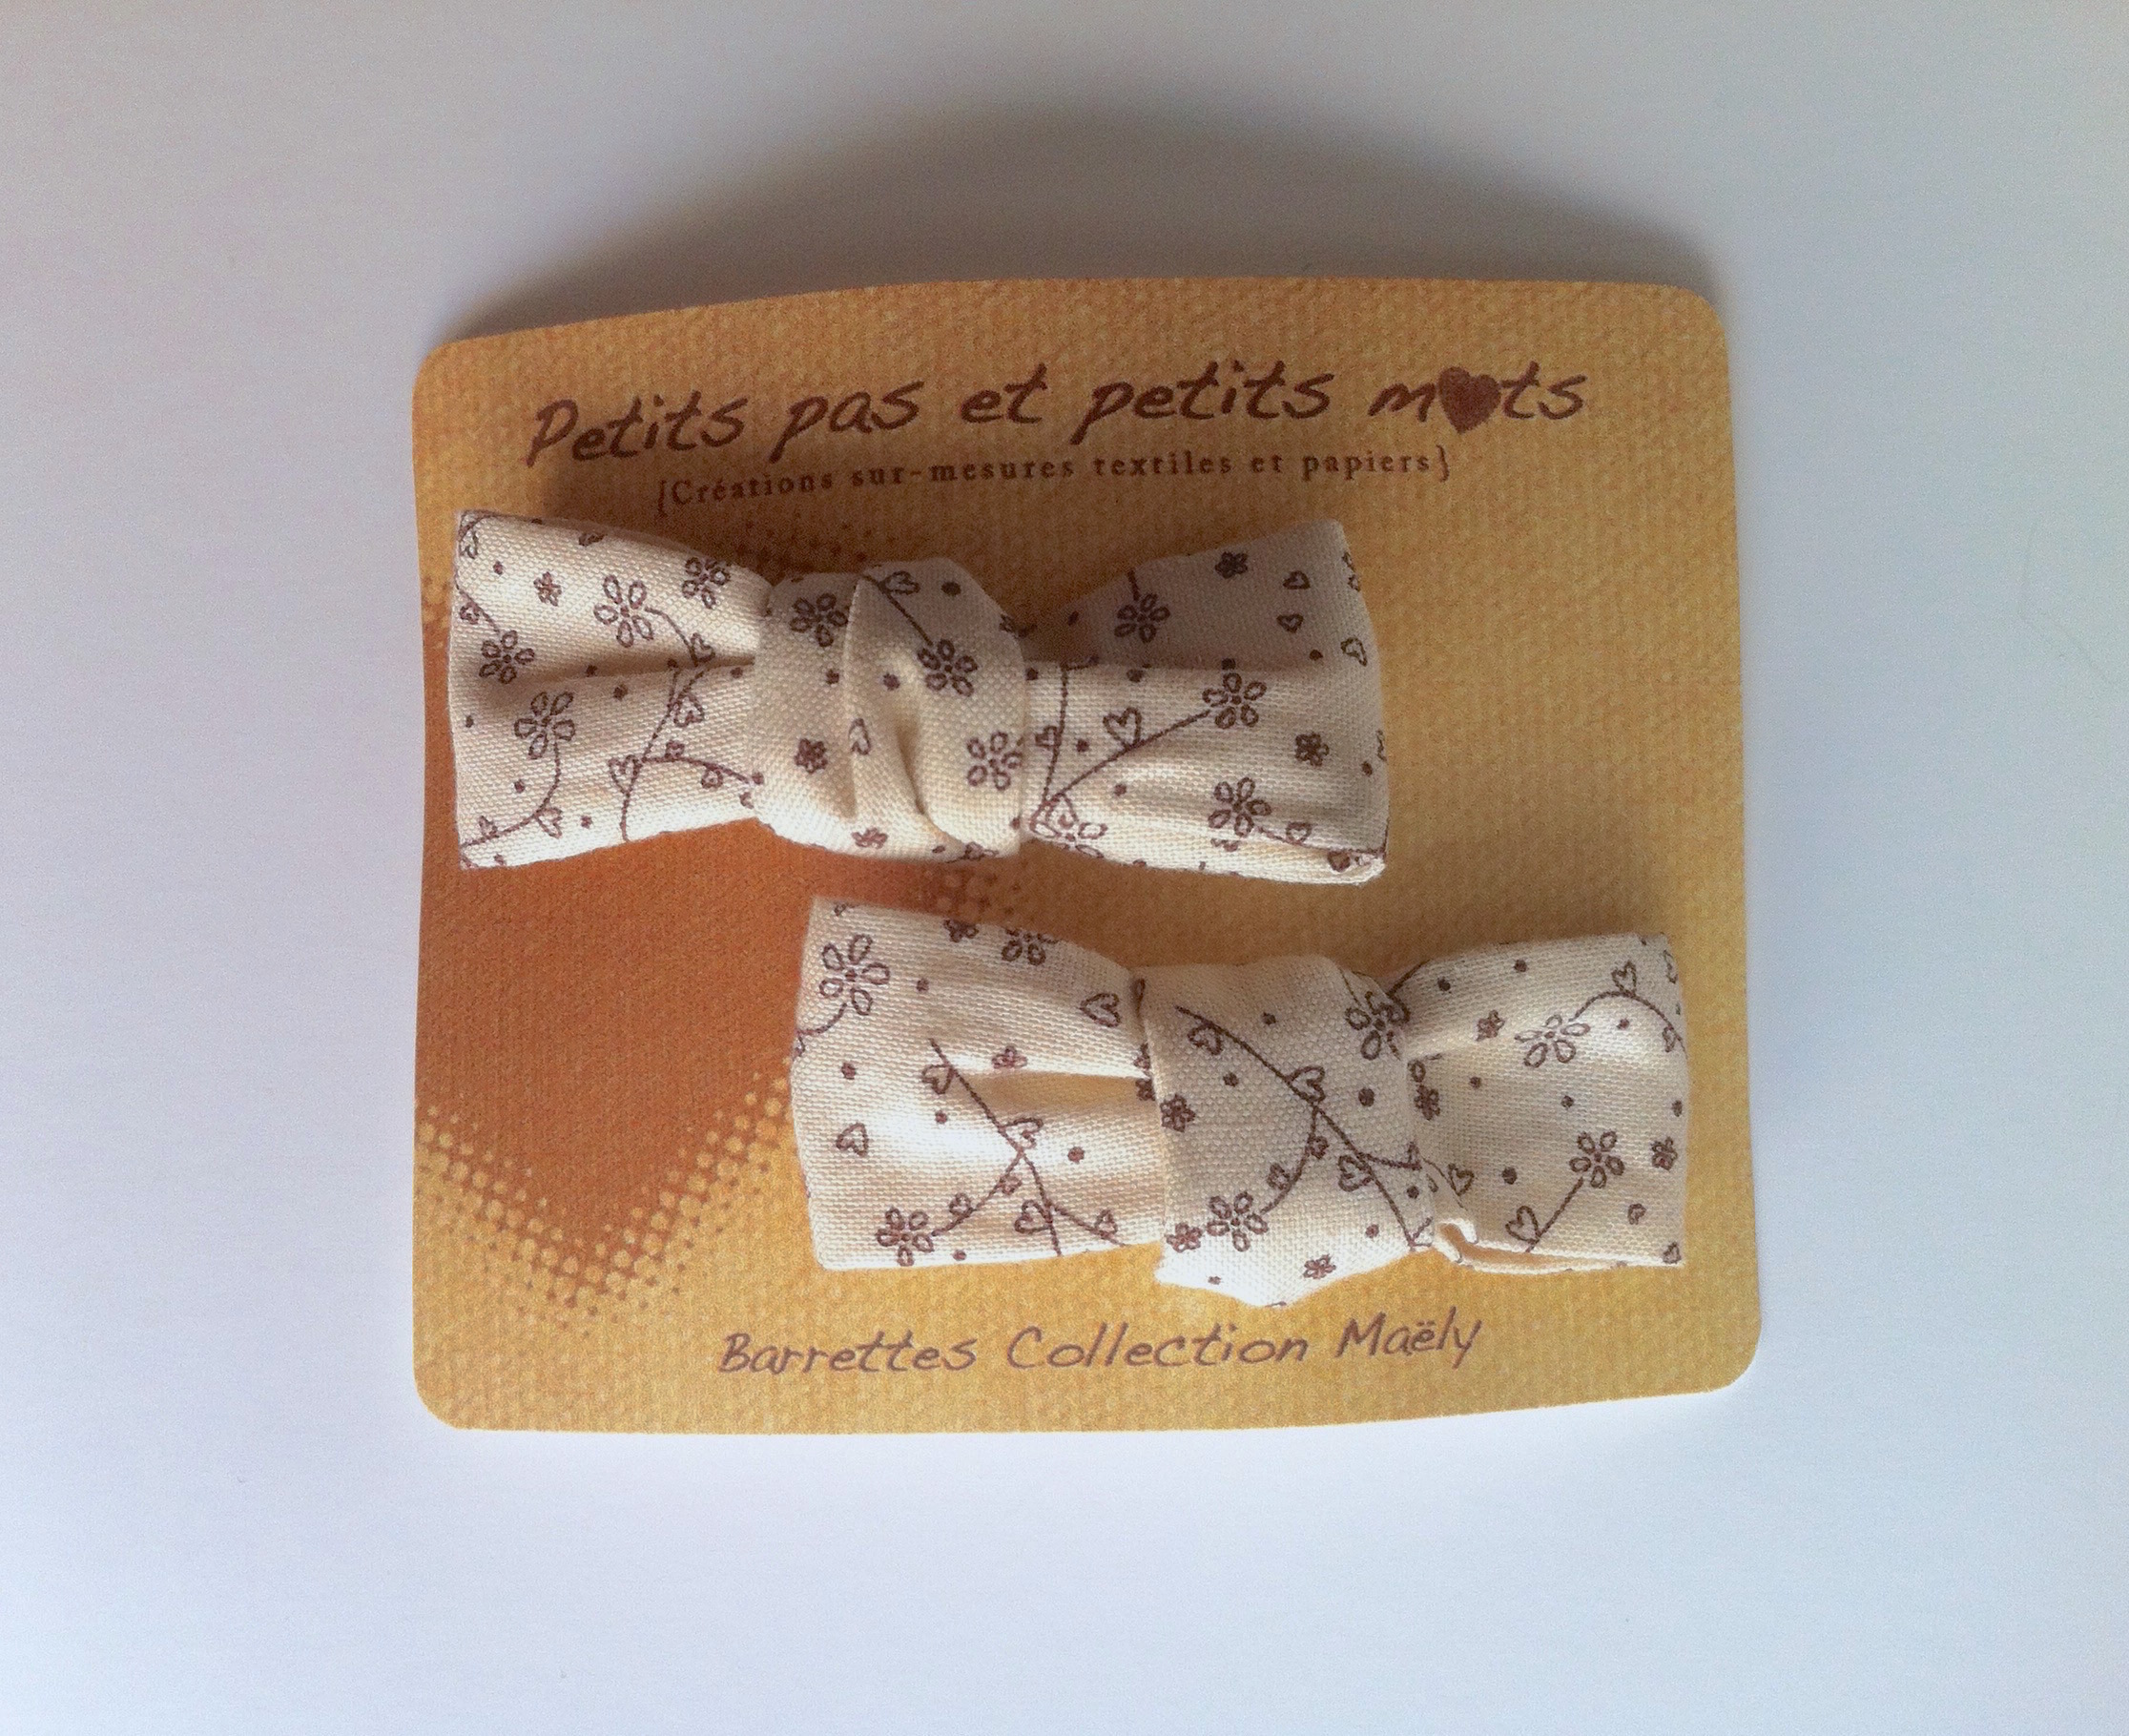 Barrettes collection Maely